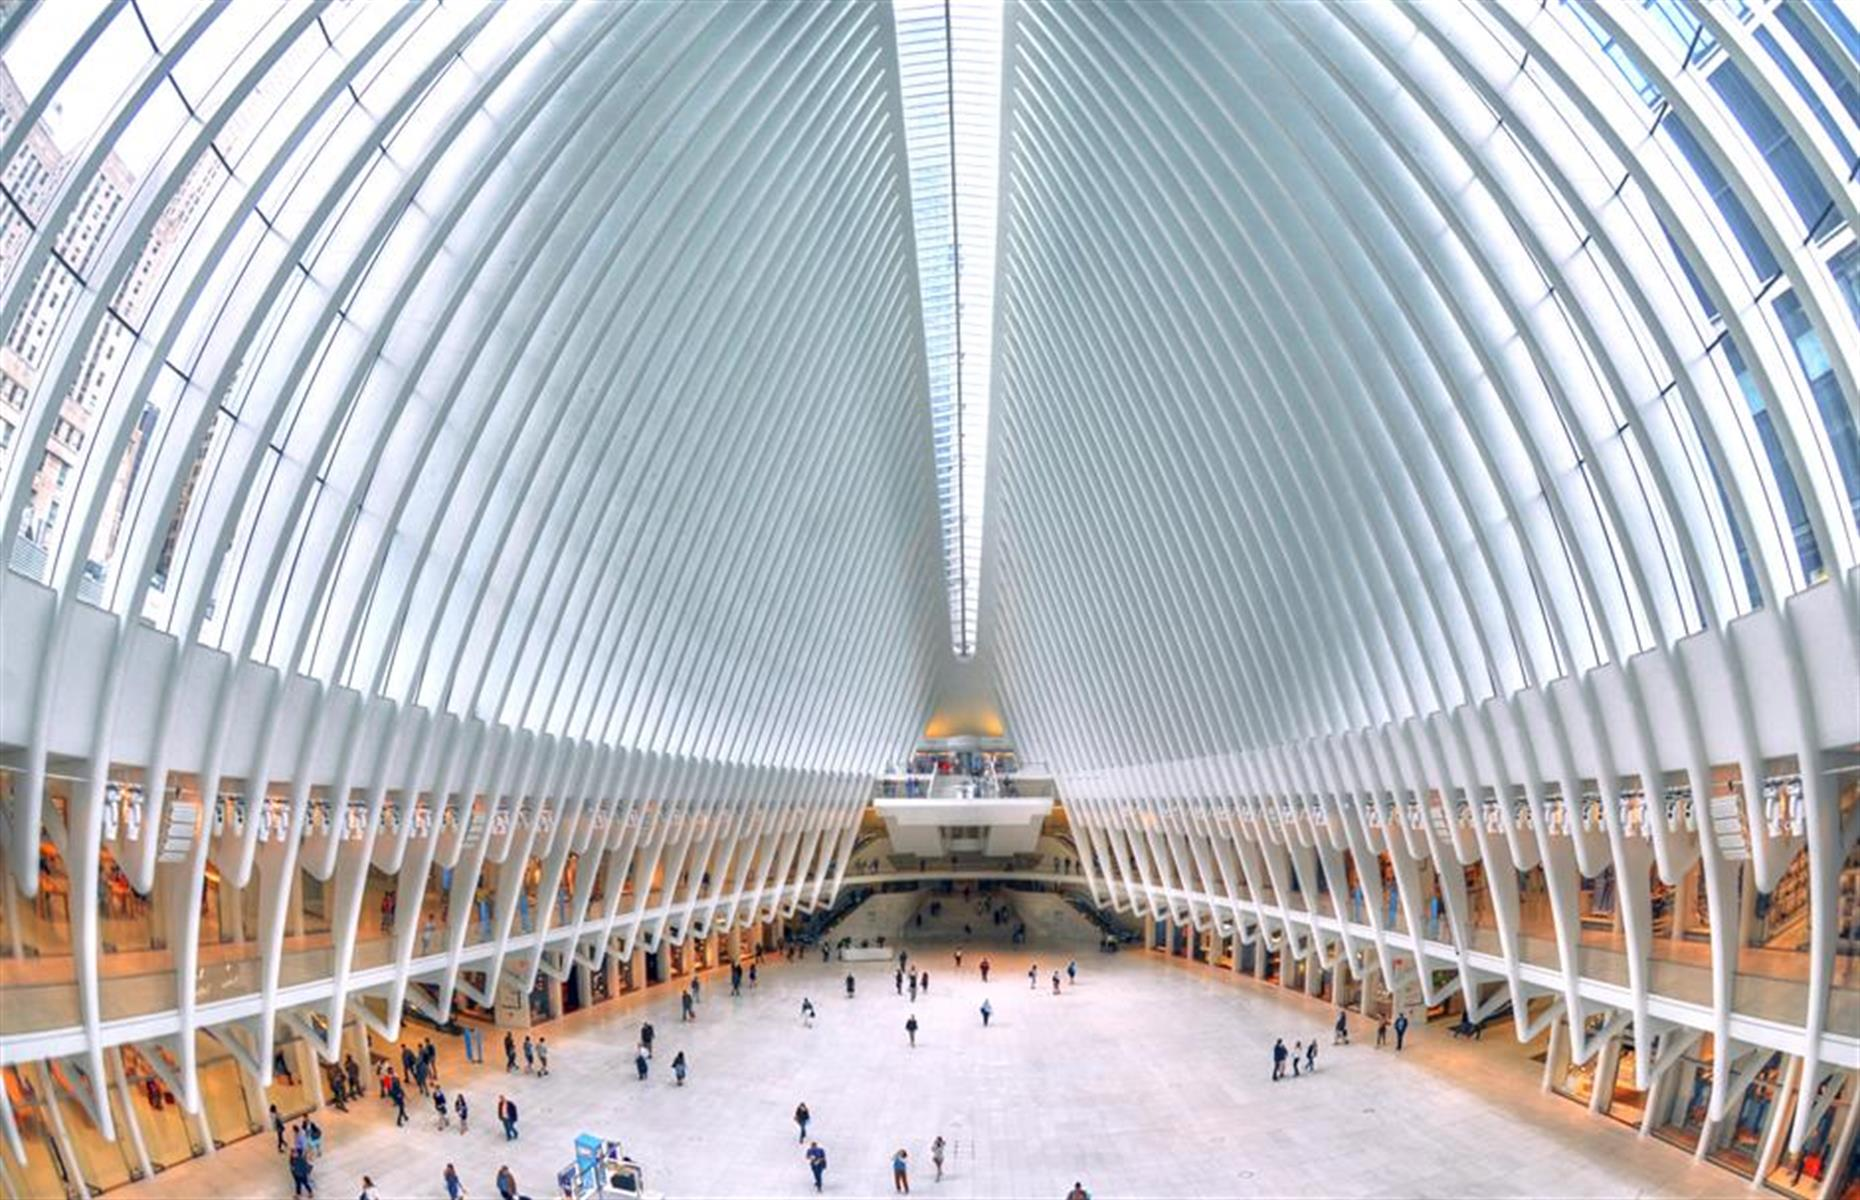 Slide 6 of 33: The light-filled cavernous centerpiece of this mall, known as the Oculus, was inspired by the image of a dove being released from a child's hands. Spanish architect Santiago Calatrava designed it as part of the 365,000-square-foot (33,909sqm) shopping area in the World Trade Center complex. Poignantly, the Neo-Futuristic structure was designed so that every 11 September at 10.28am the sun shines directly through the central skylight to create a symmetrical shaft of light.